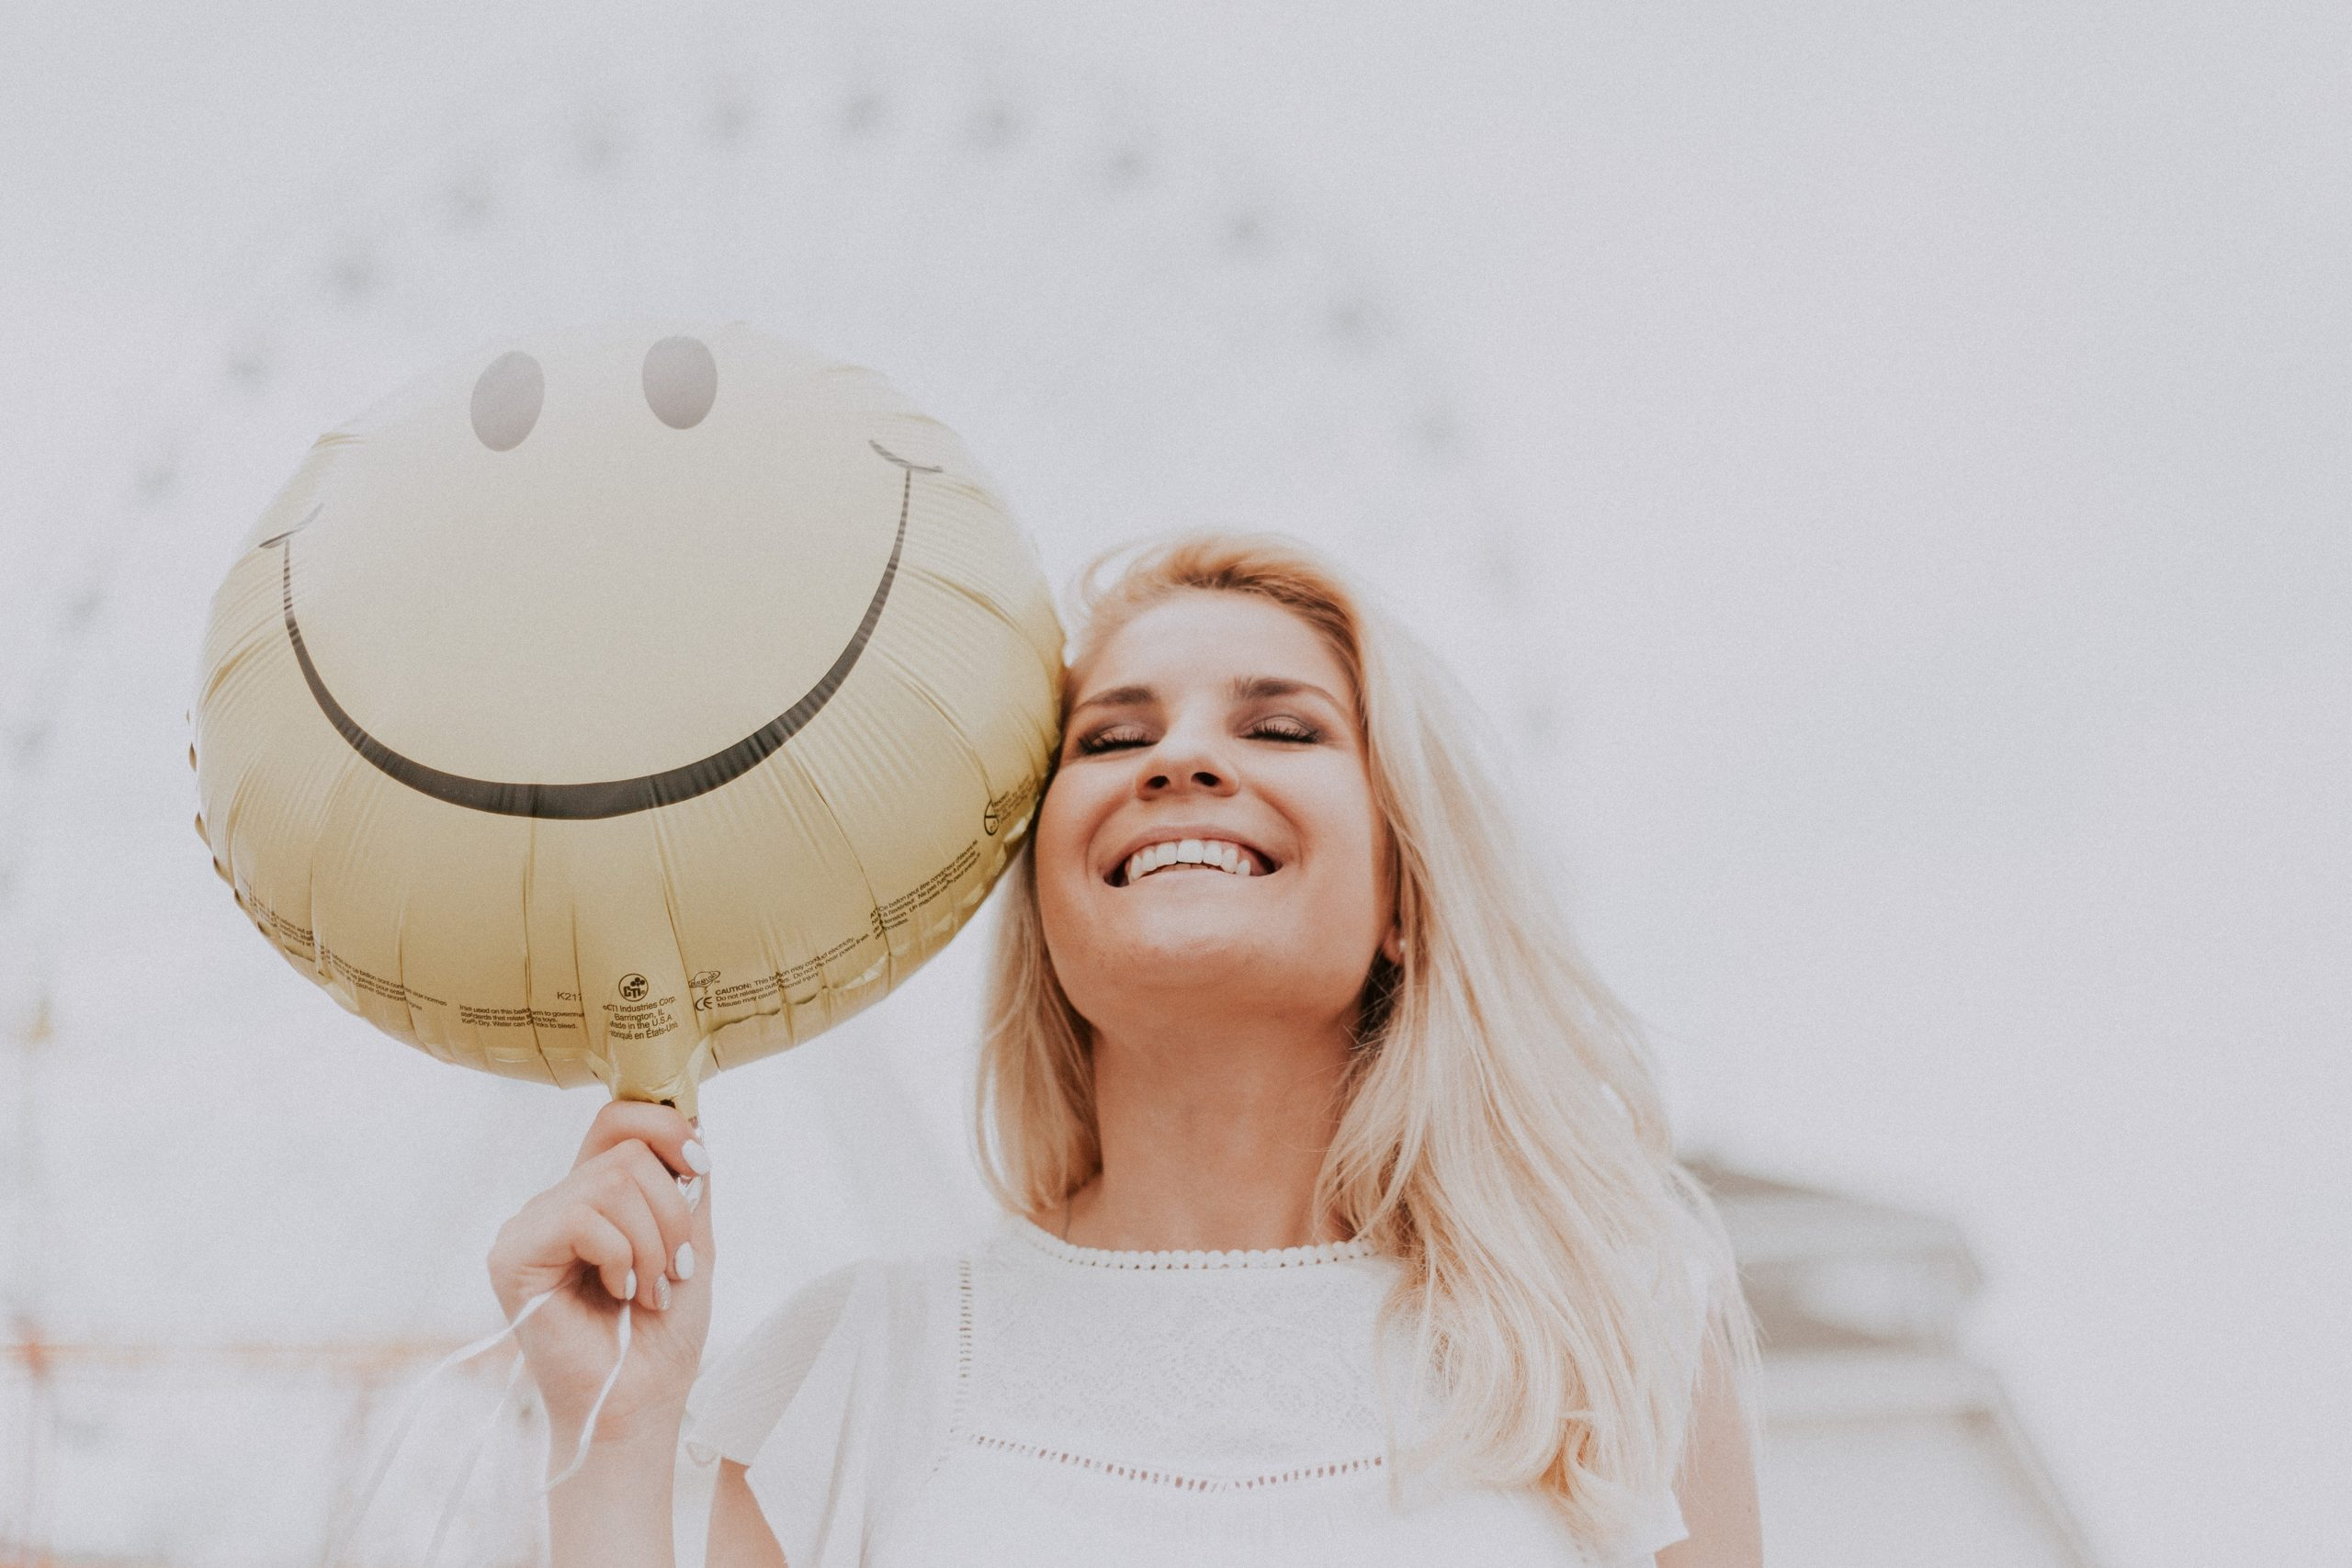 woman with smiley balloon